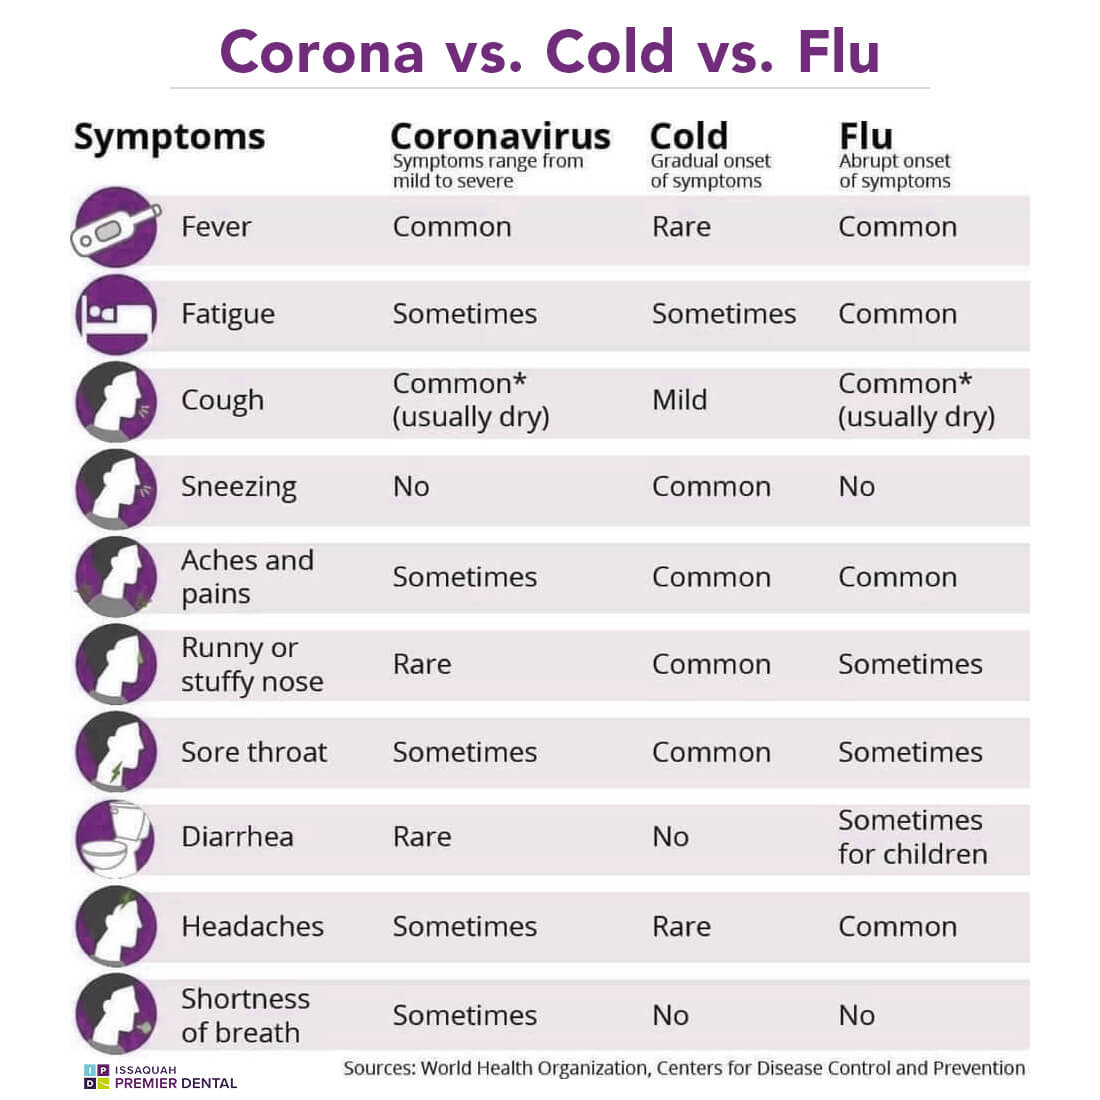 differences between coronavirus, flu, and common cold